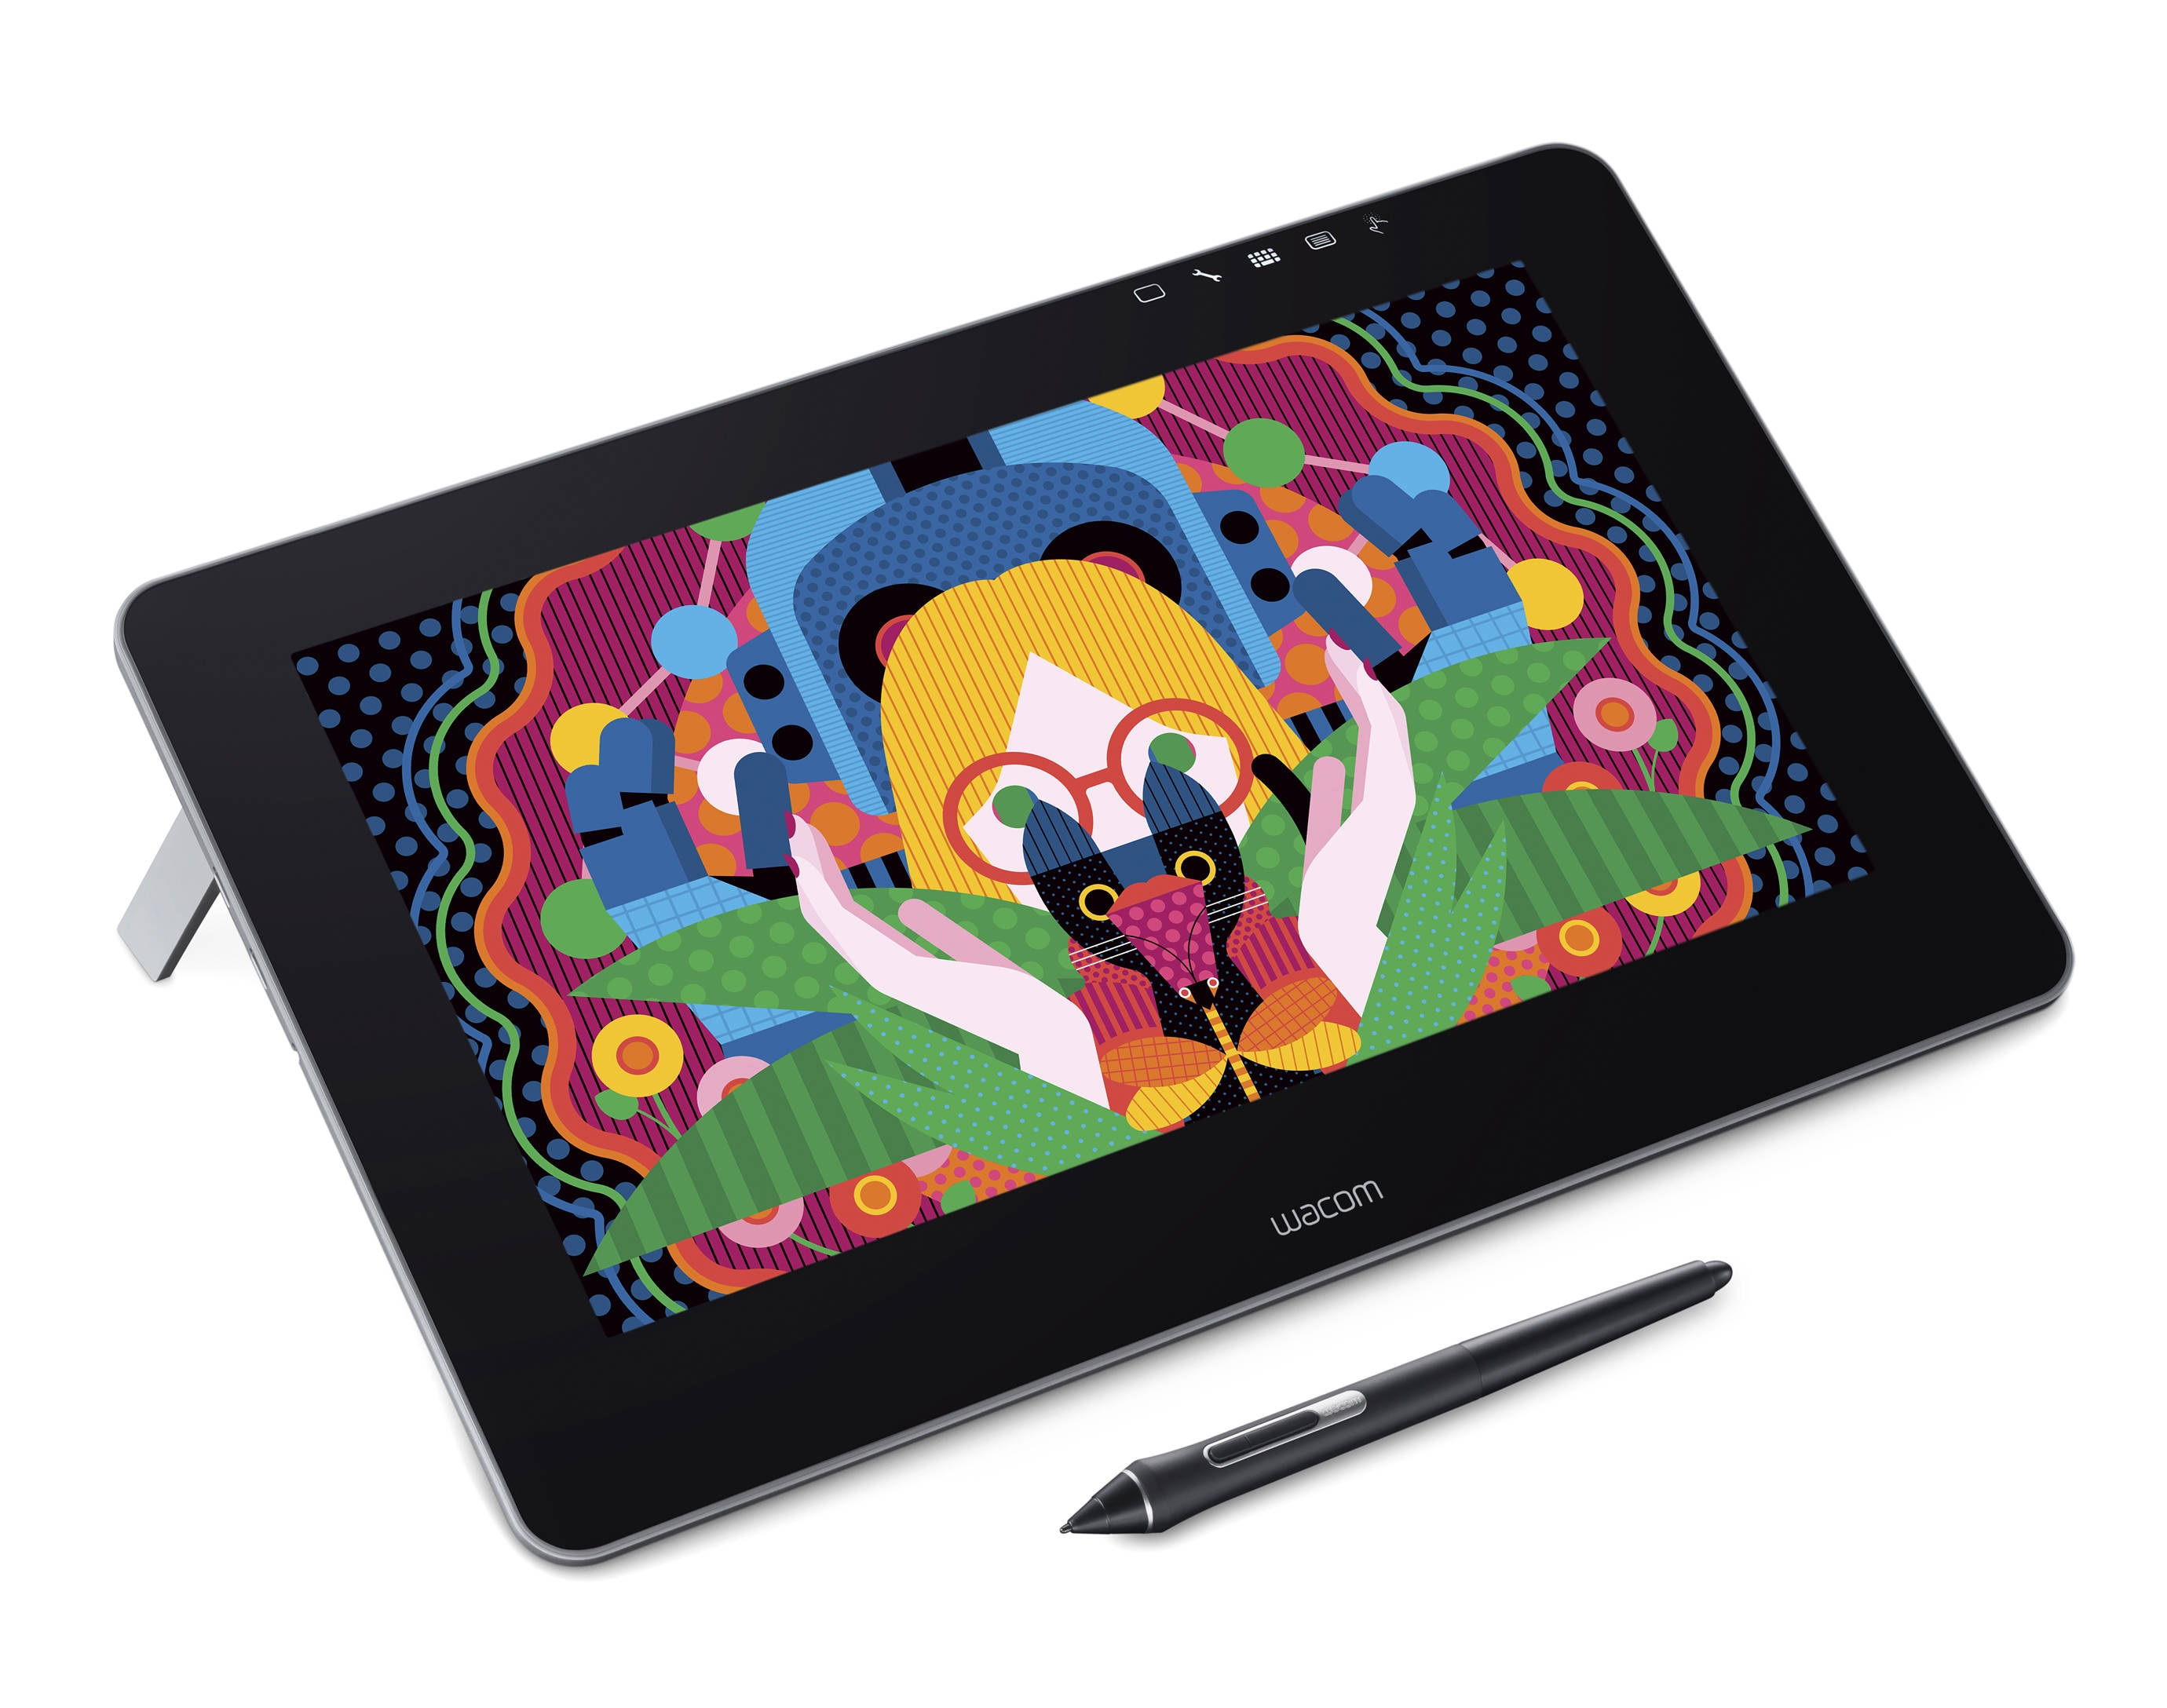 Wacom Cintiq Pro 13 inch Creative Pen and Touch Graphic Tablet